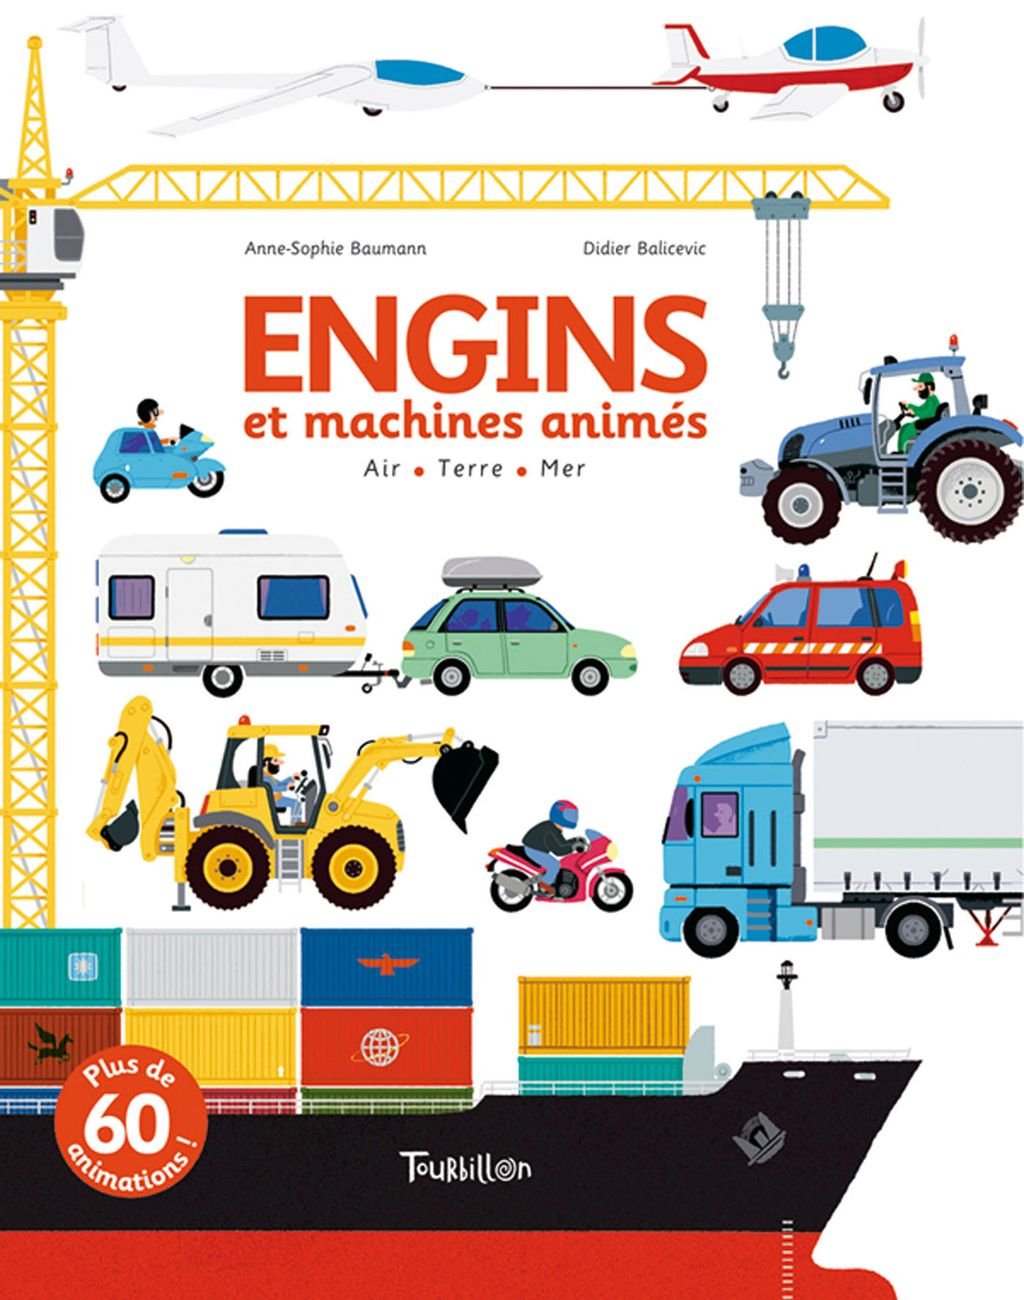 « Engins et machines animés » cover